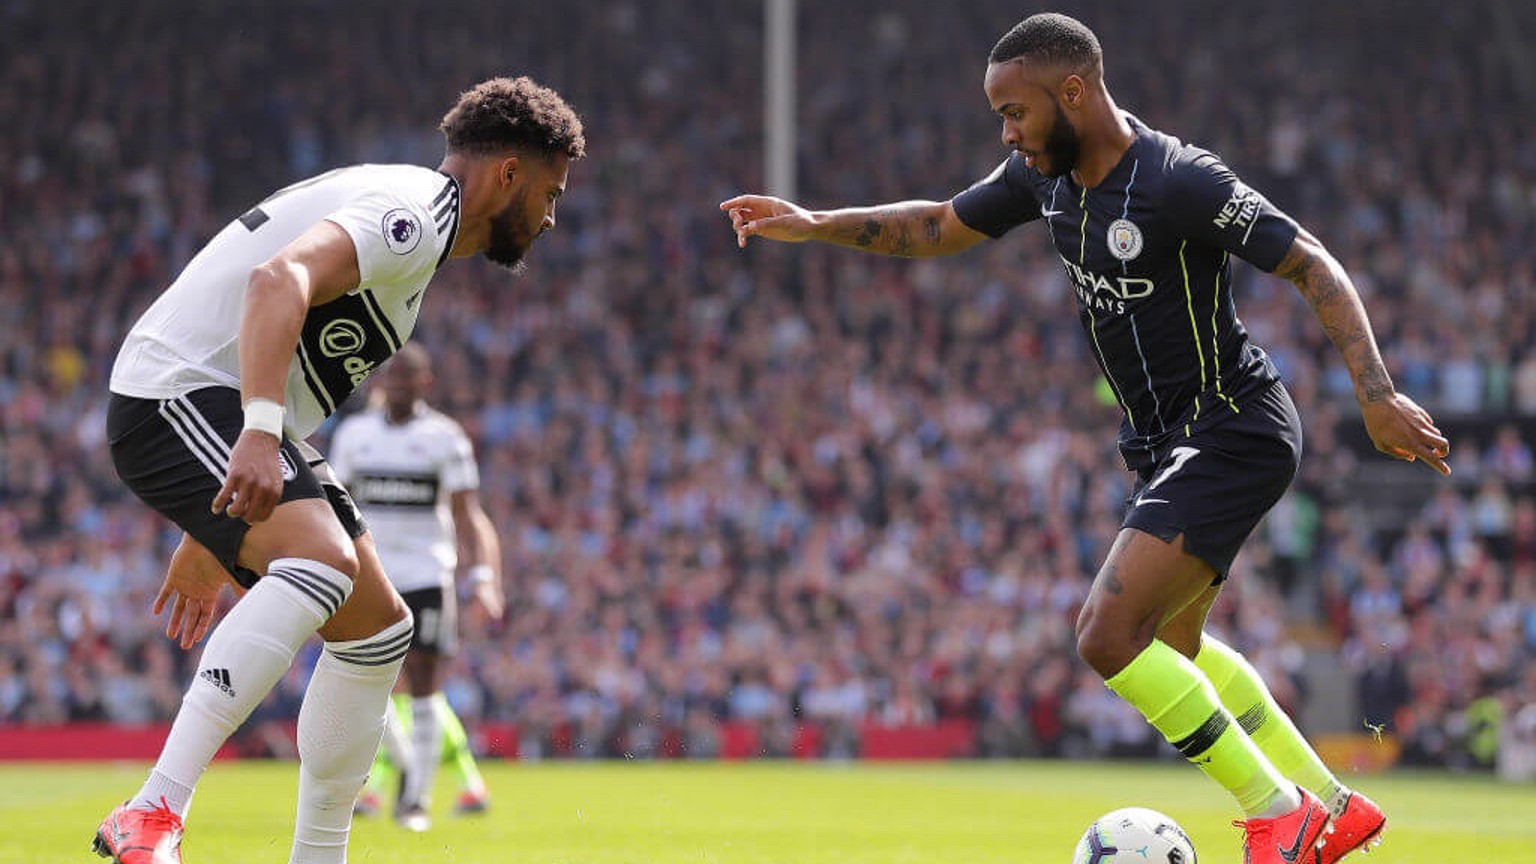 RAZZLE DAZZLE: Raheem Sterling takes on Cyrus Christie